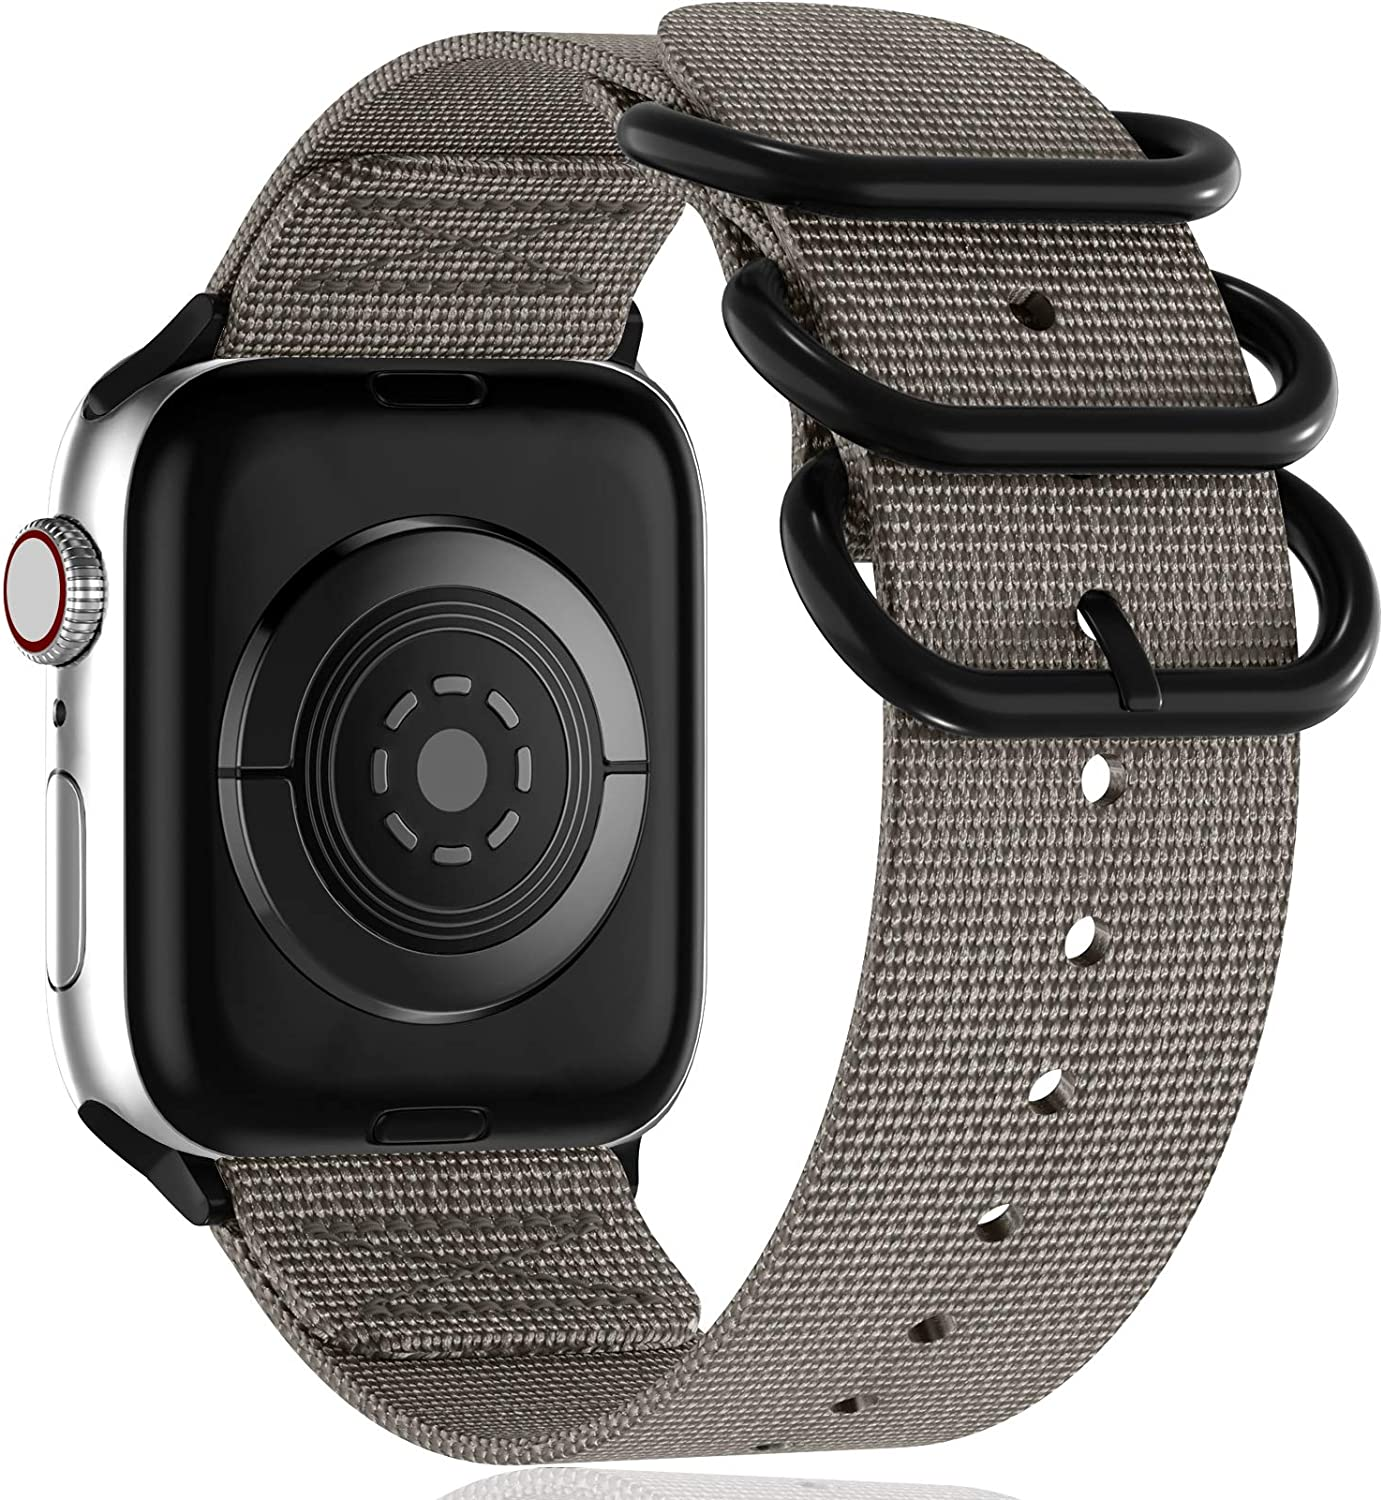 Muranne Compatible with Apple Watch Band 42mm 44mm, Classy Lightweight Washable Woven Nylon Strap with Military-Style Loop Adapters for iWatch SE Series 6 5 4 3 2 1 for Women Men, Gray, X-Large